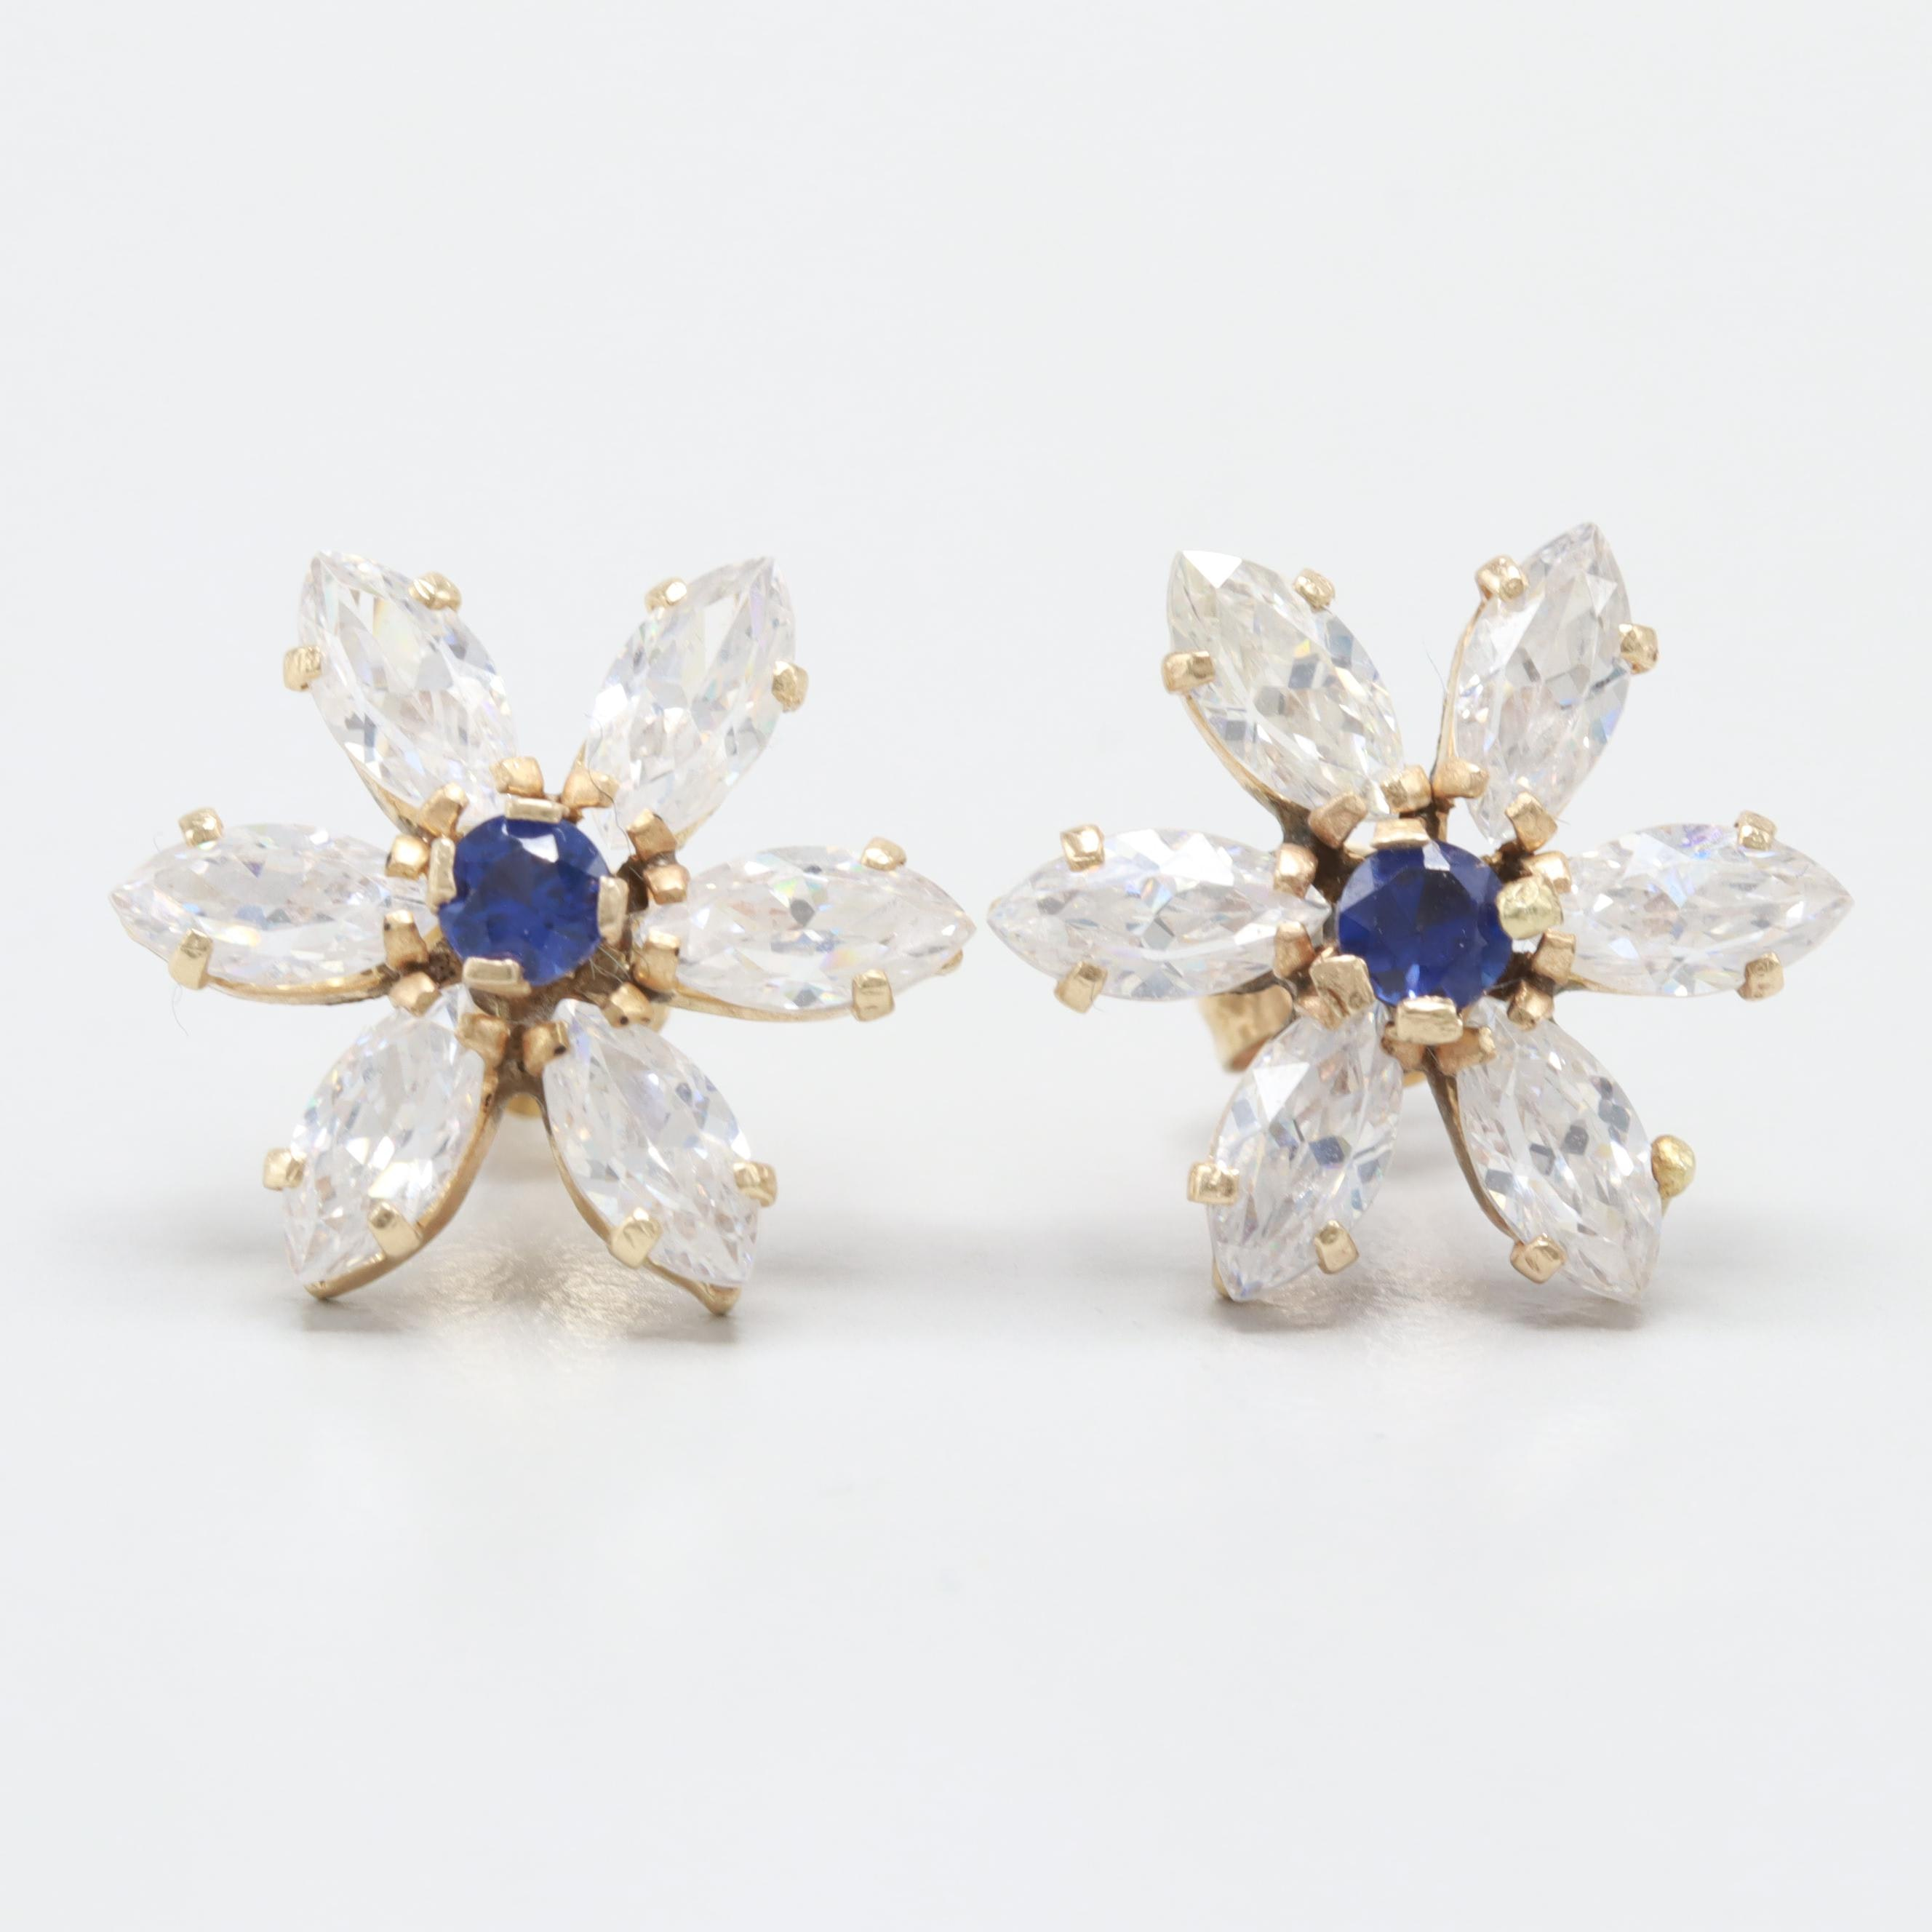 10K Yellow Gold  Synthetic Sapphire and Cubic Zirconia Earrings